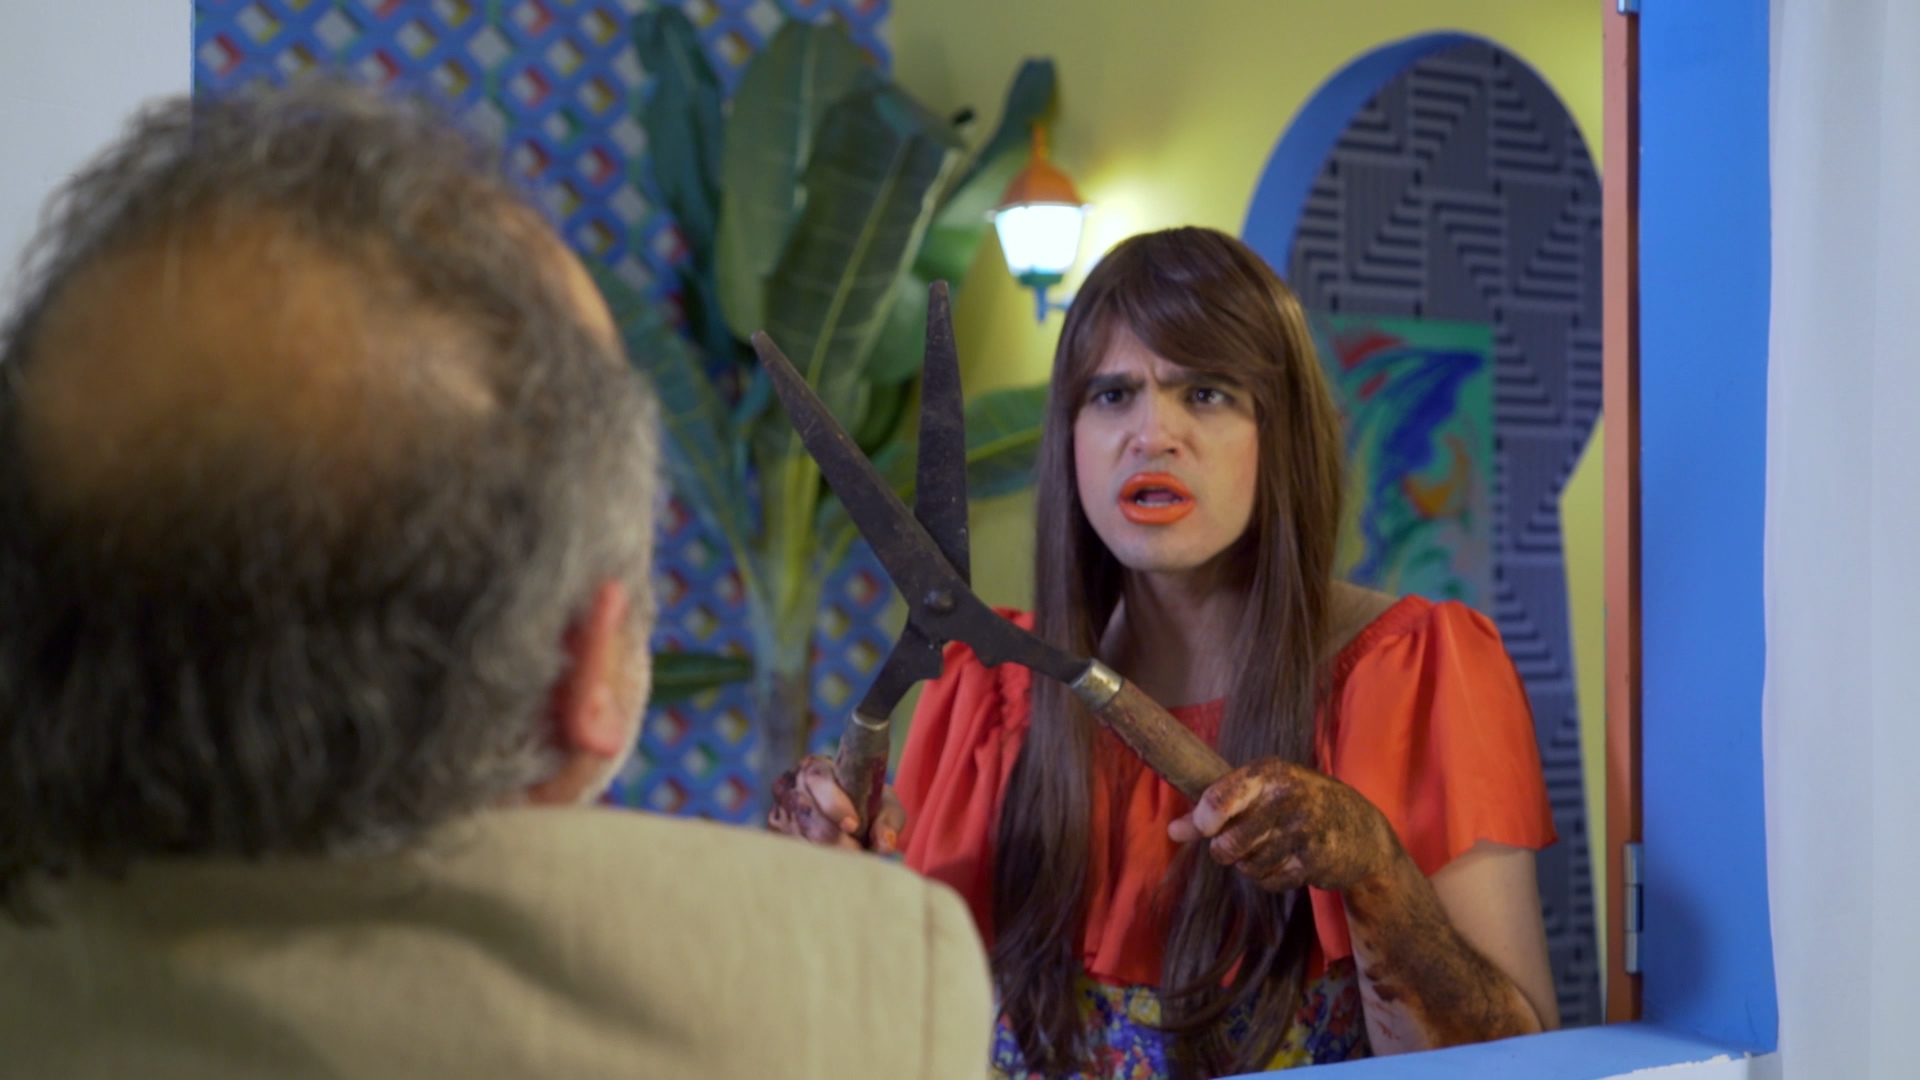 CONGLOMERATE, still form Desde el Jardin directed by Sol Calero and Dafna Maimon.